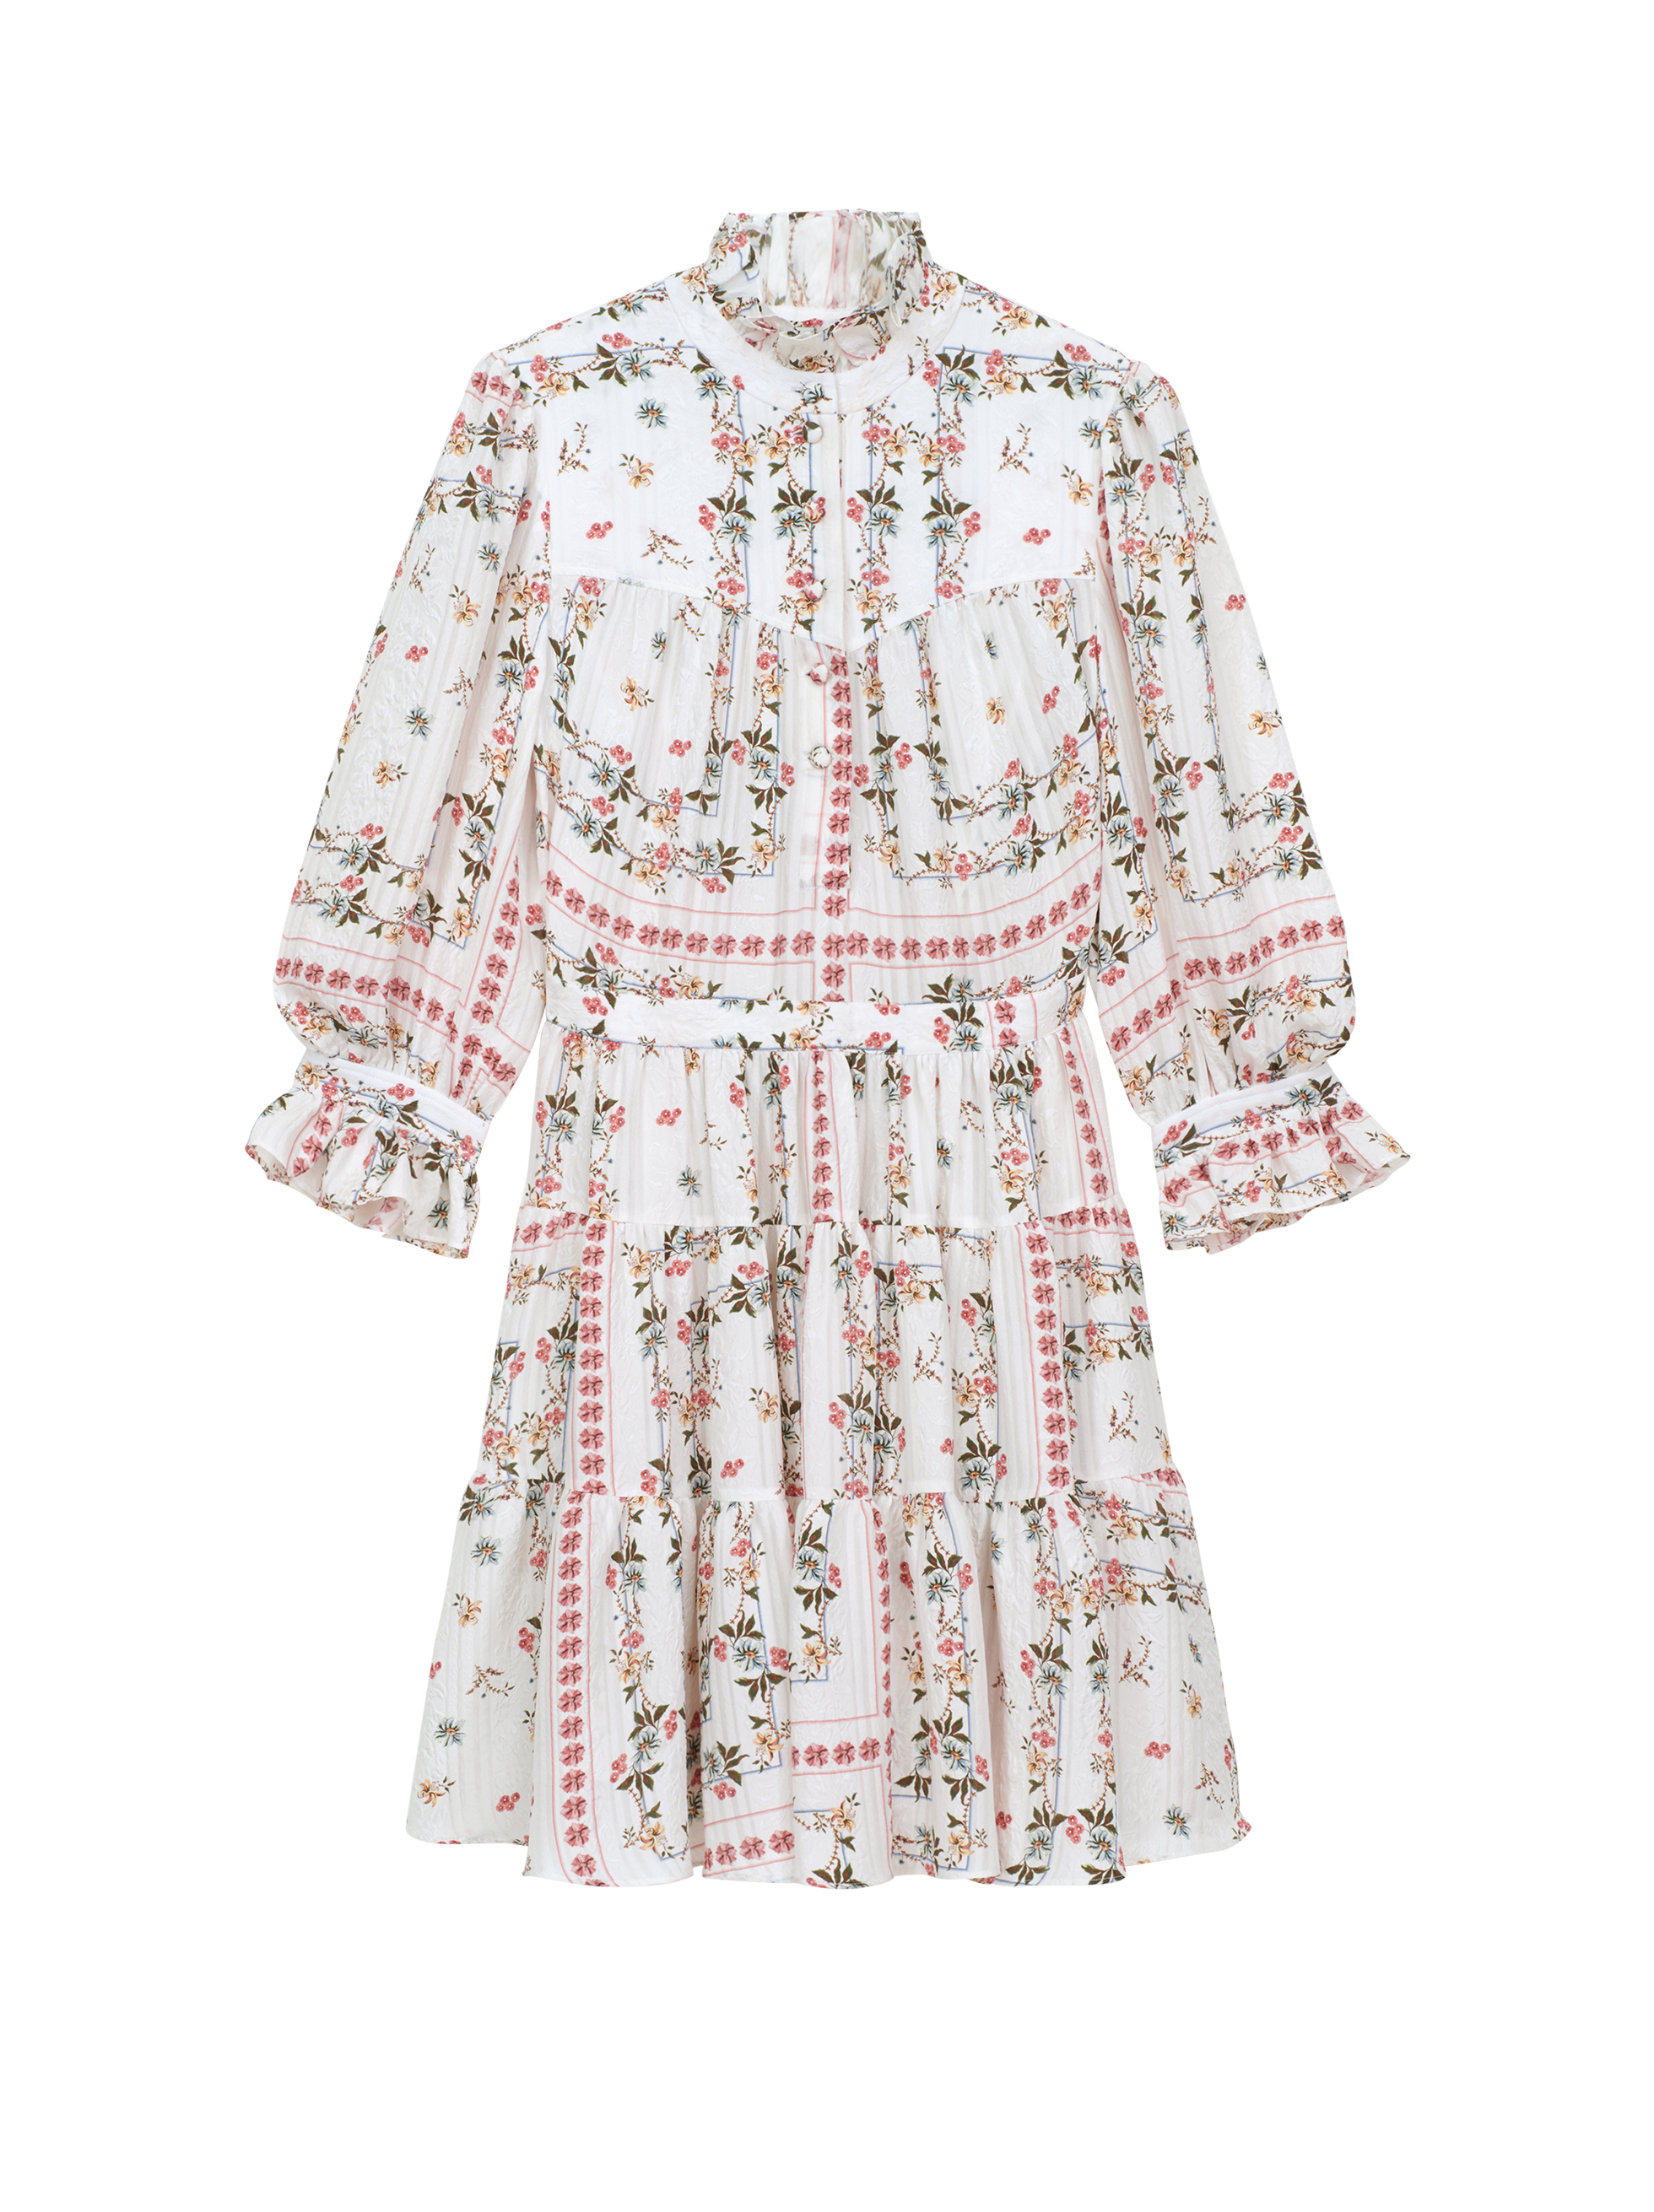 FLORAL DESIGN CRÊPE DE CHINE DRESS